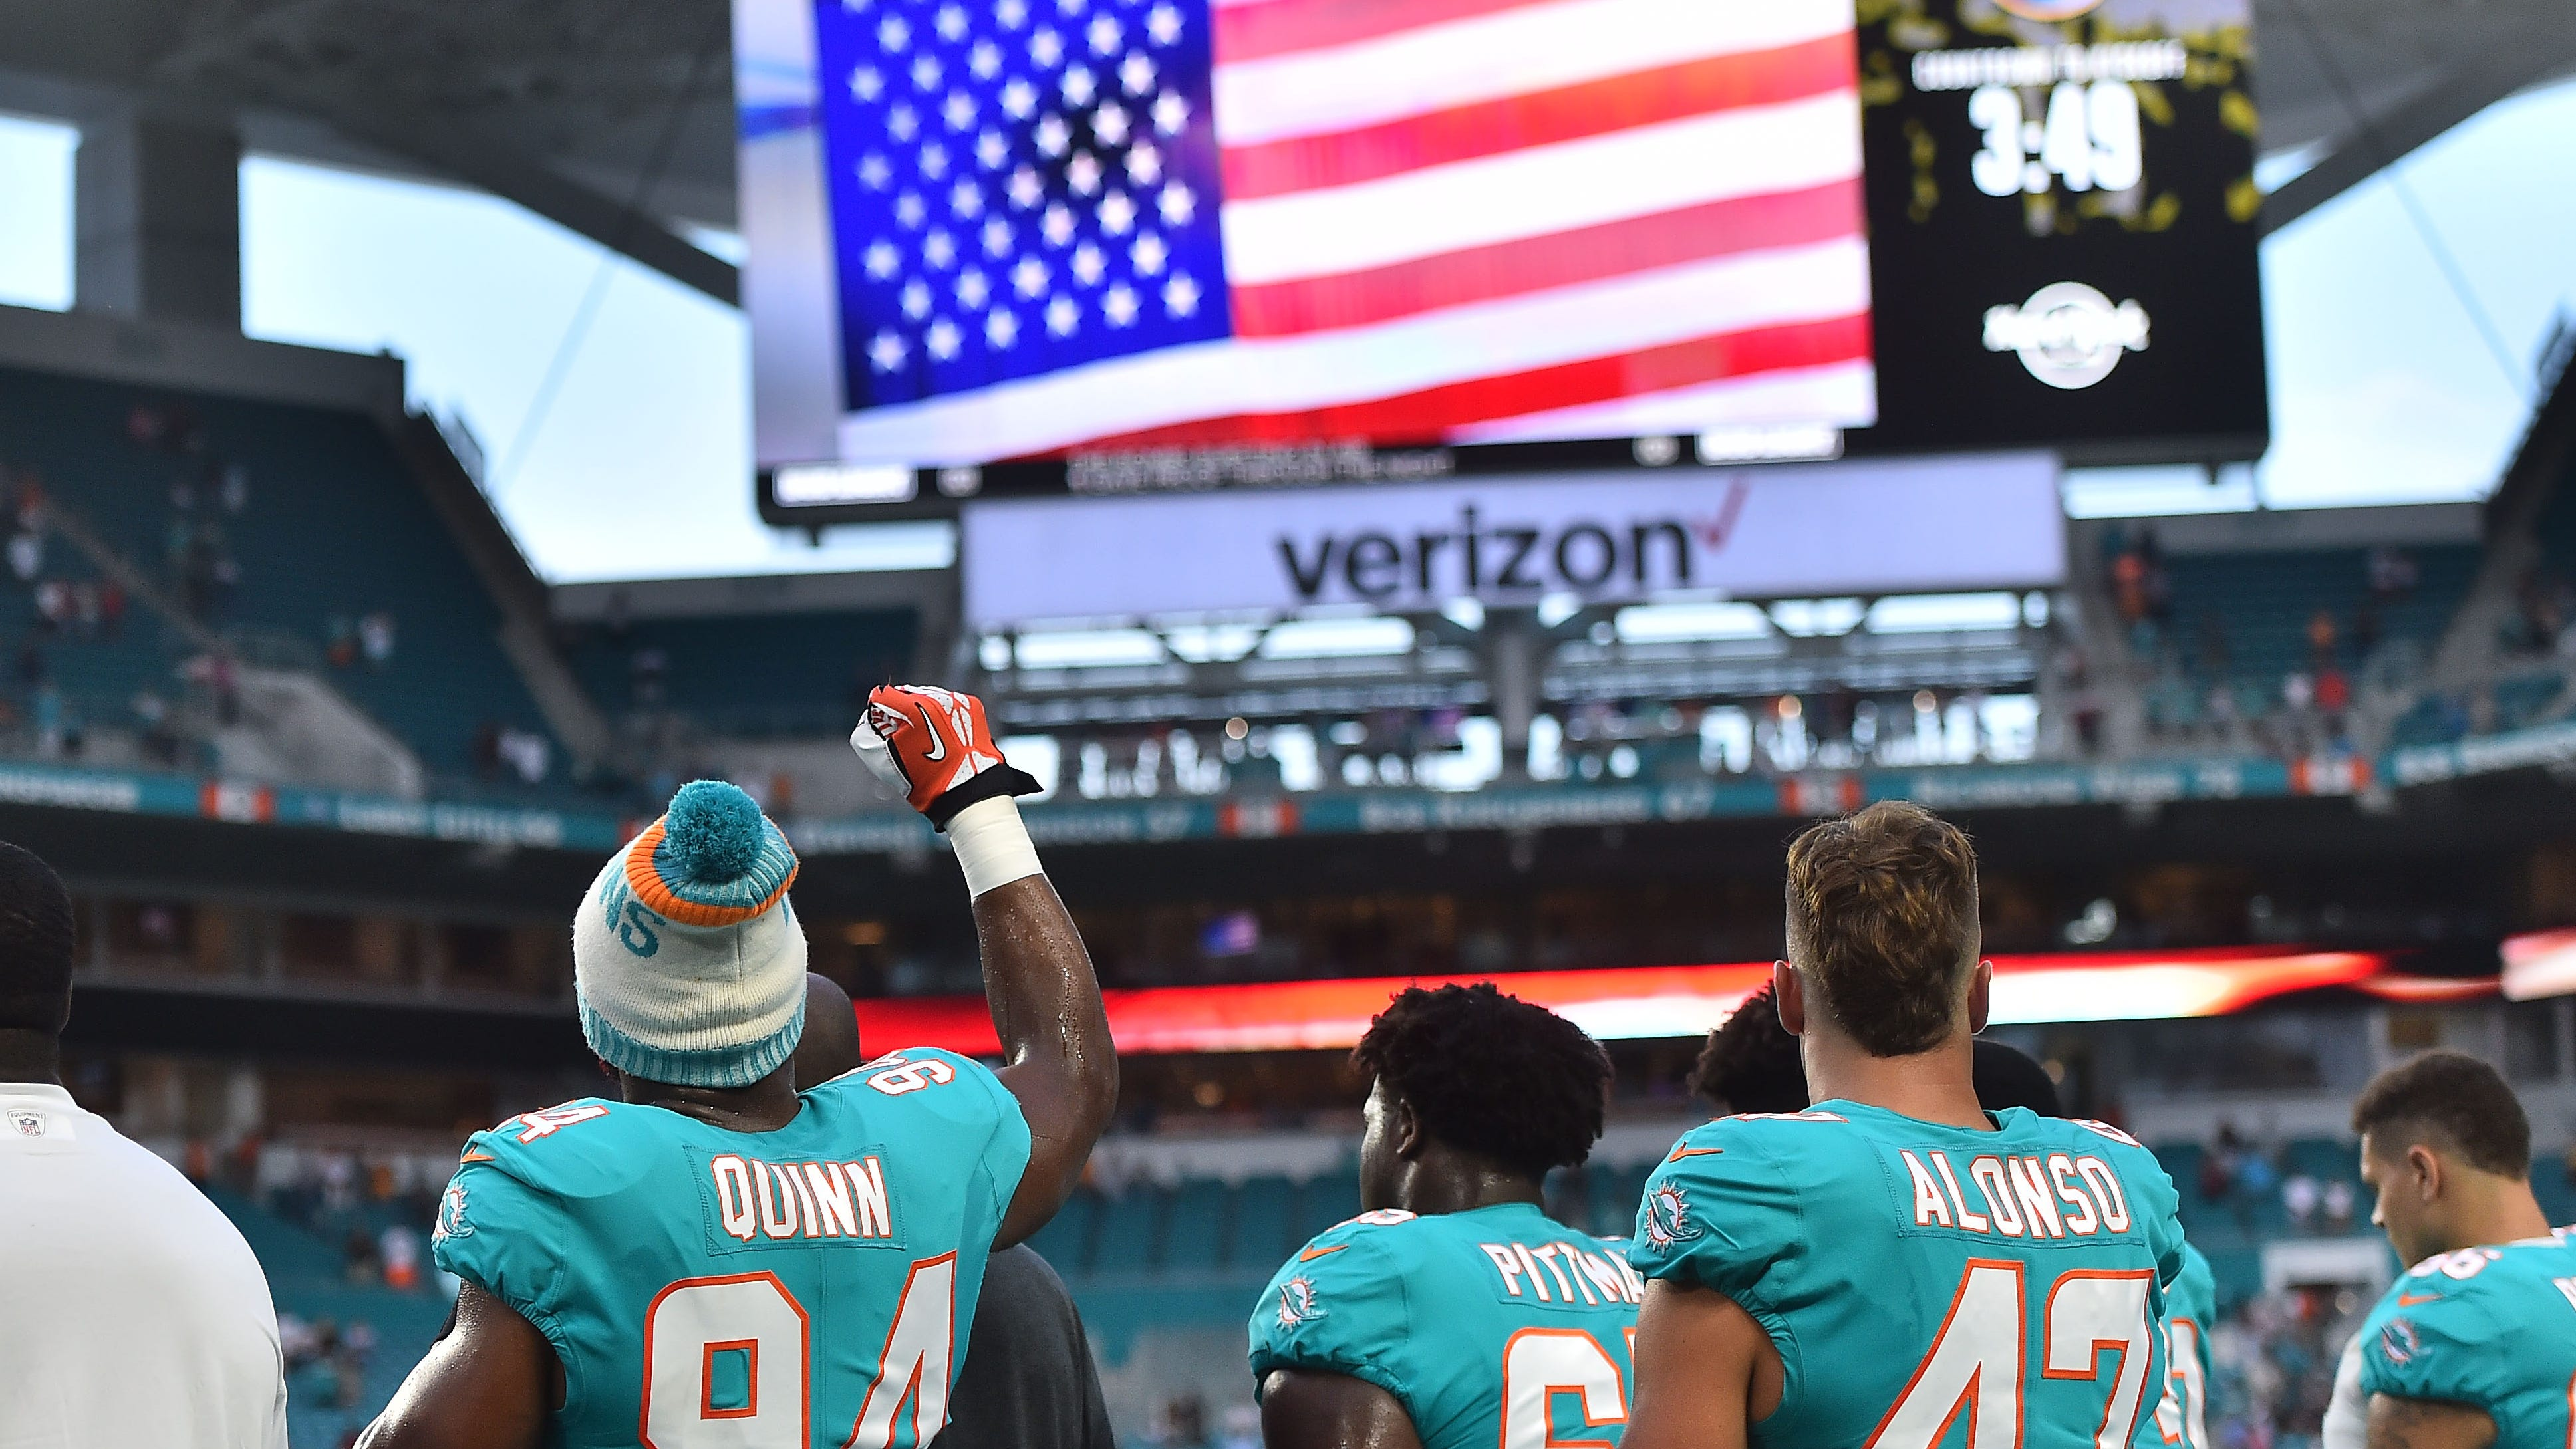 87be0e03-f0a0-46fa-ac61-0c82d428ac78-usp_nfl__tampa_bay_buccaneers_at_miami_dolphins